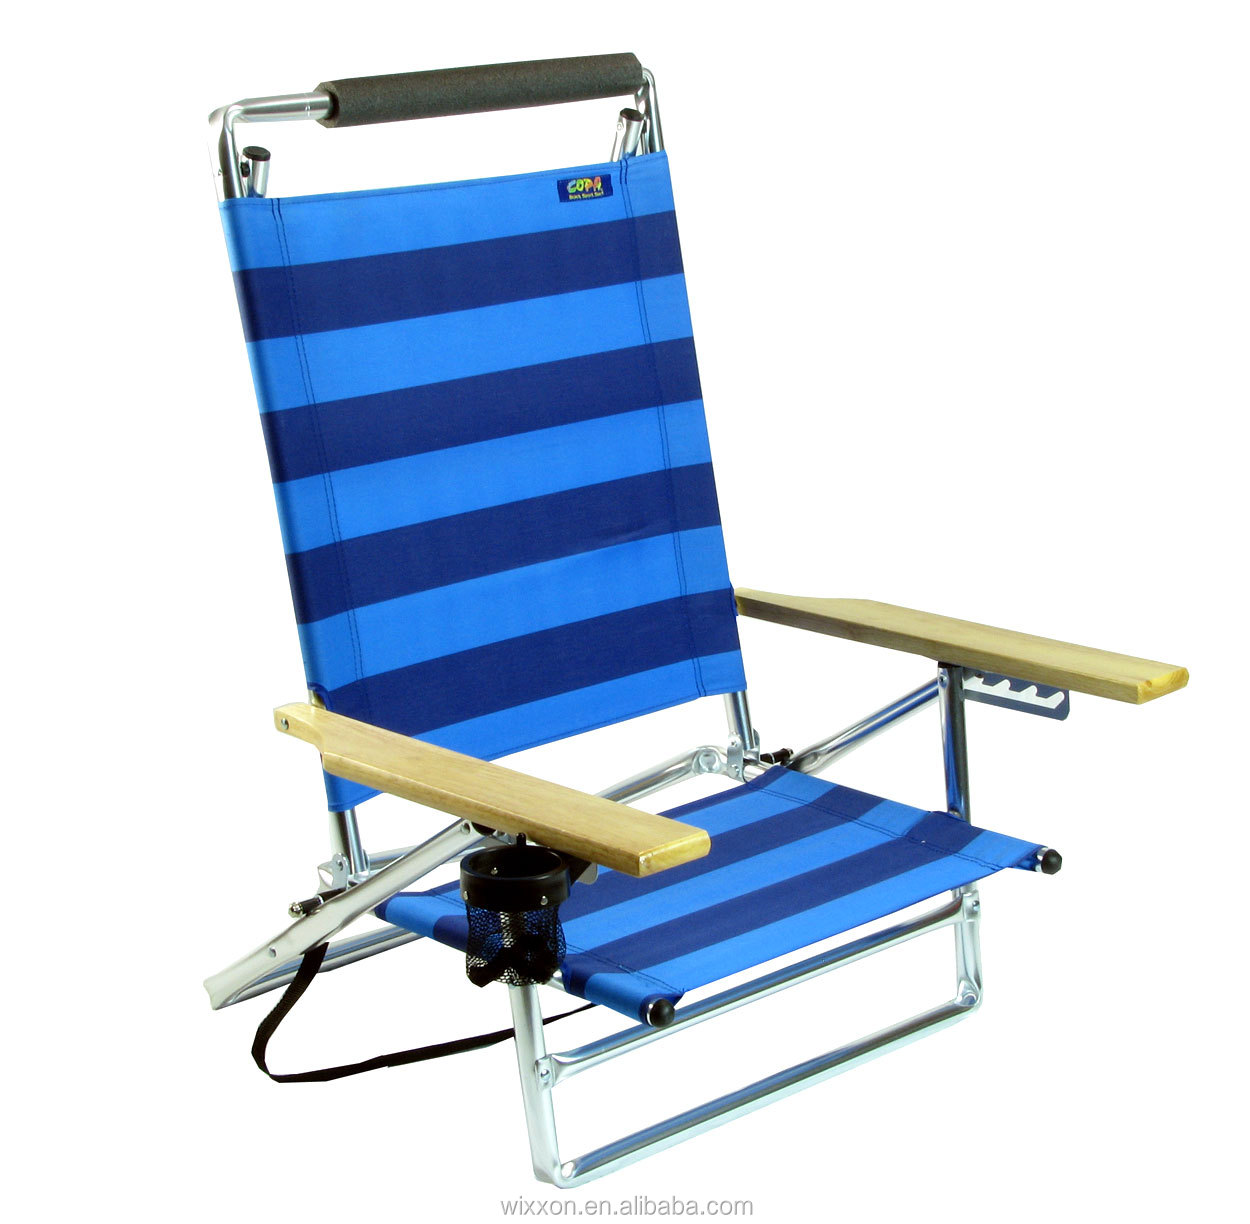 Sillas Plegables Amazon Amazon Silla De Playa Plegable Buy Silla De Playa Silla De Playa Plegable Amazon Silla De Playa Plegable Product On Alibaba